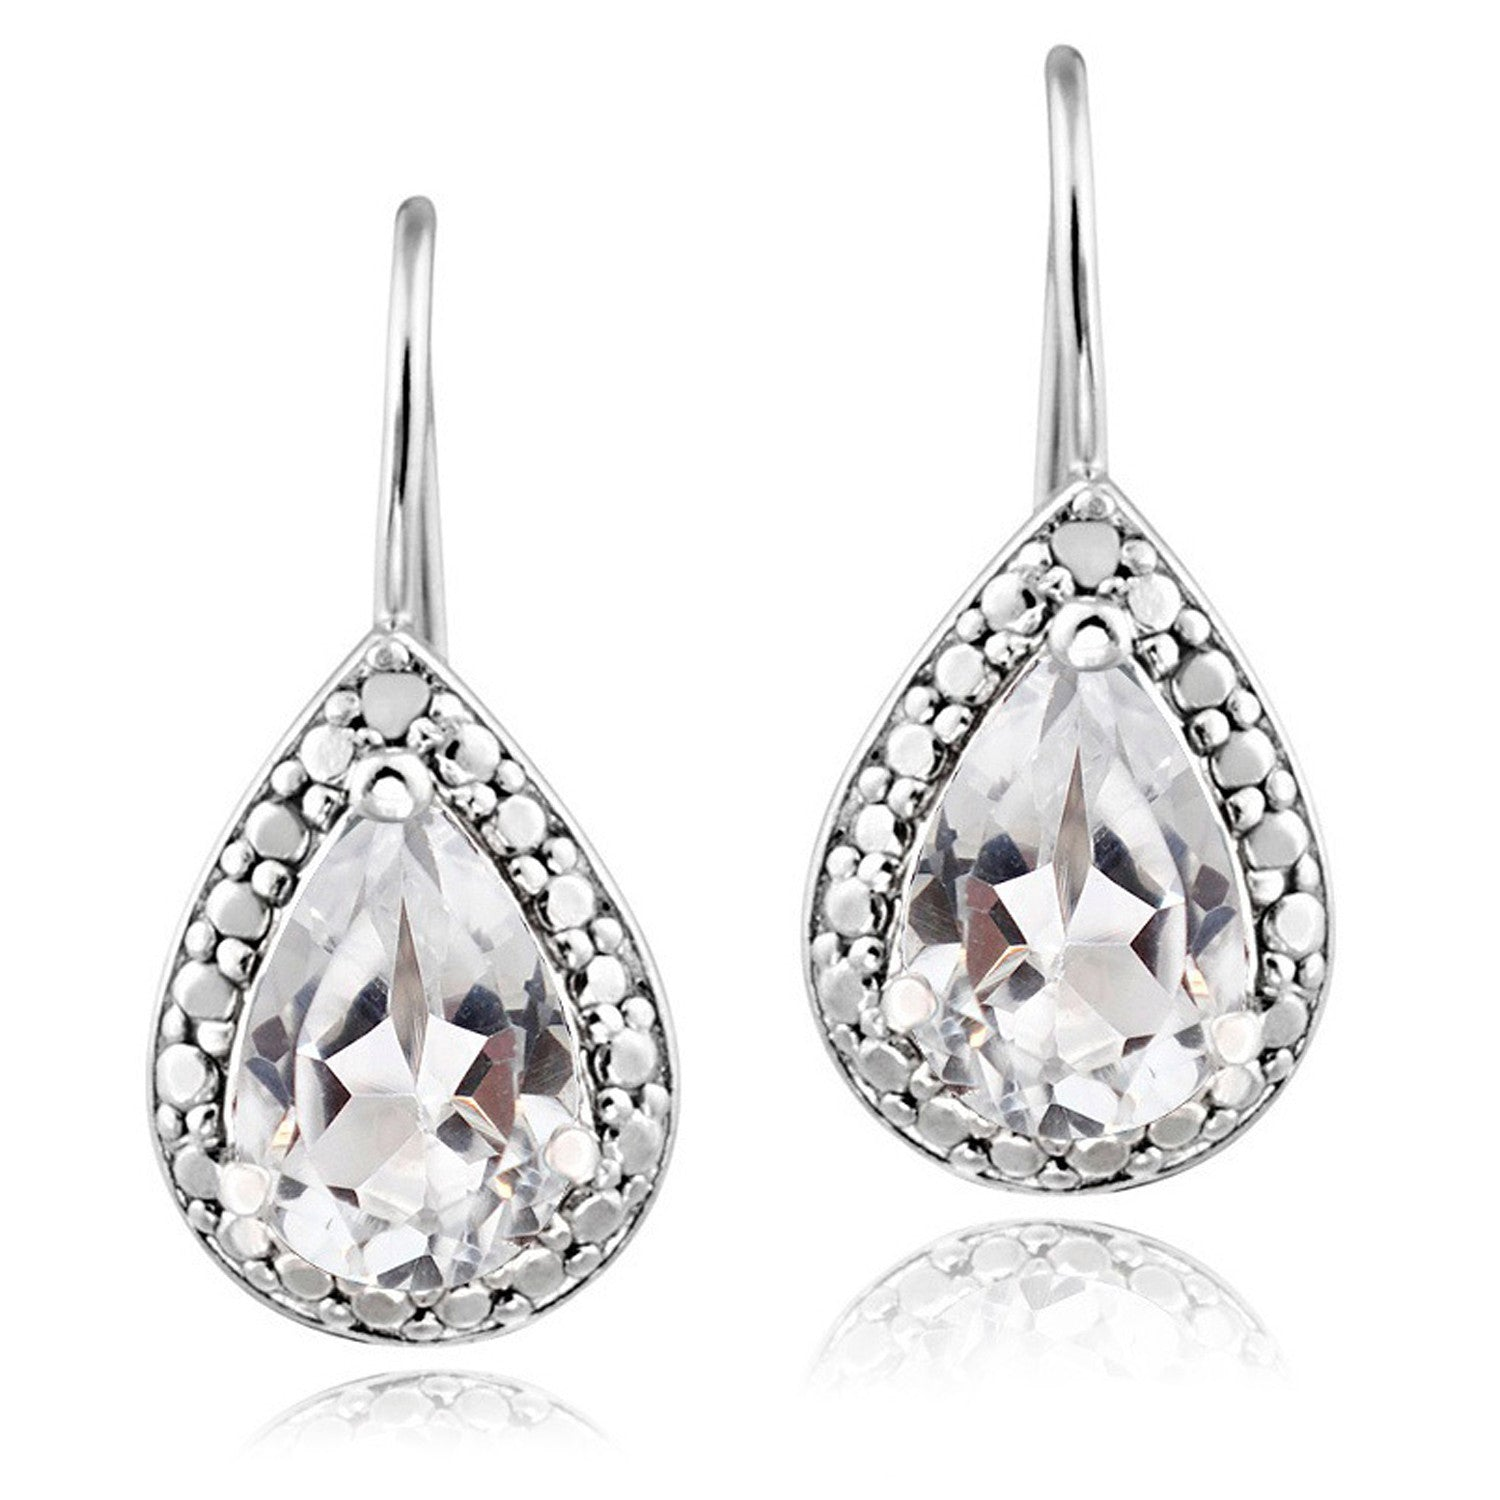 Sterling Silver Diamond & Gemstone Accent Leverback Dangle Earrings - White Topaz